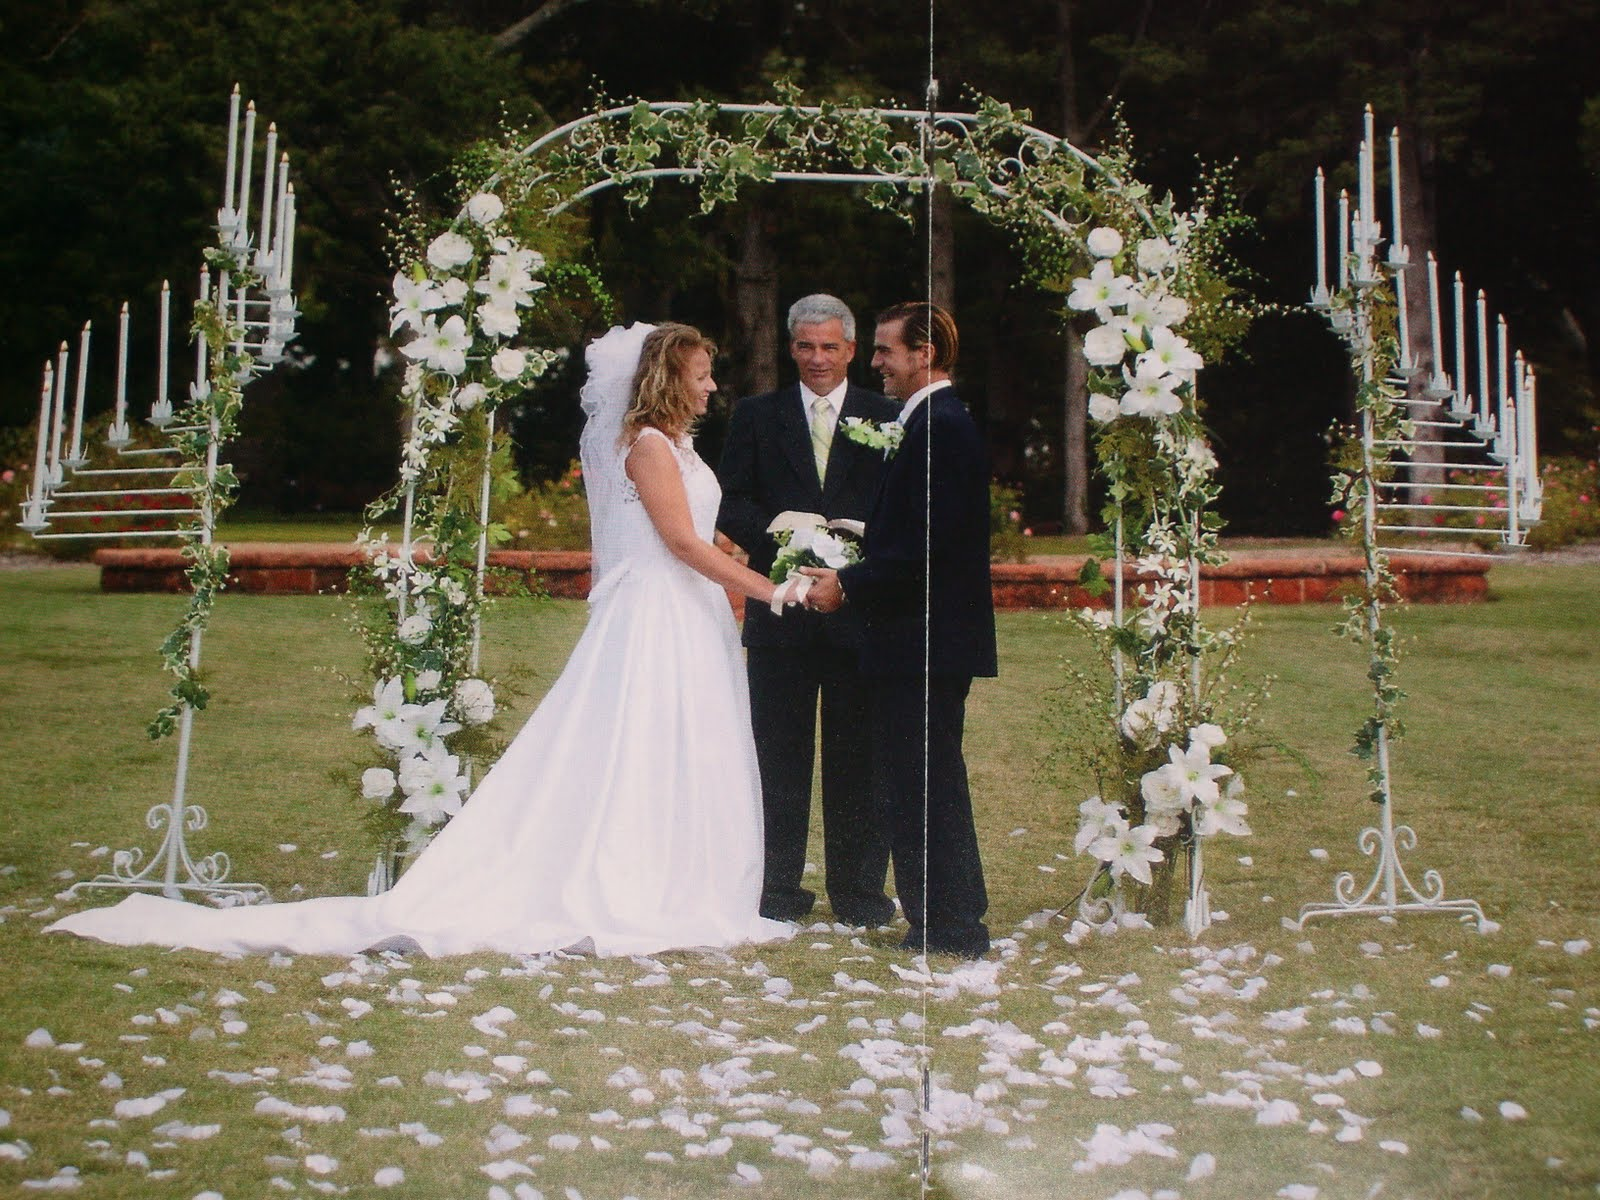 Phénix Wedding And Events Planners: Summer Weddings...an